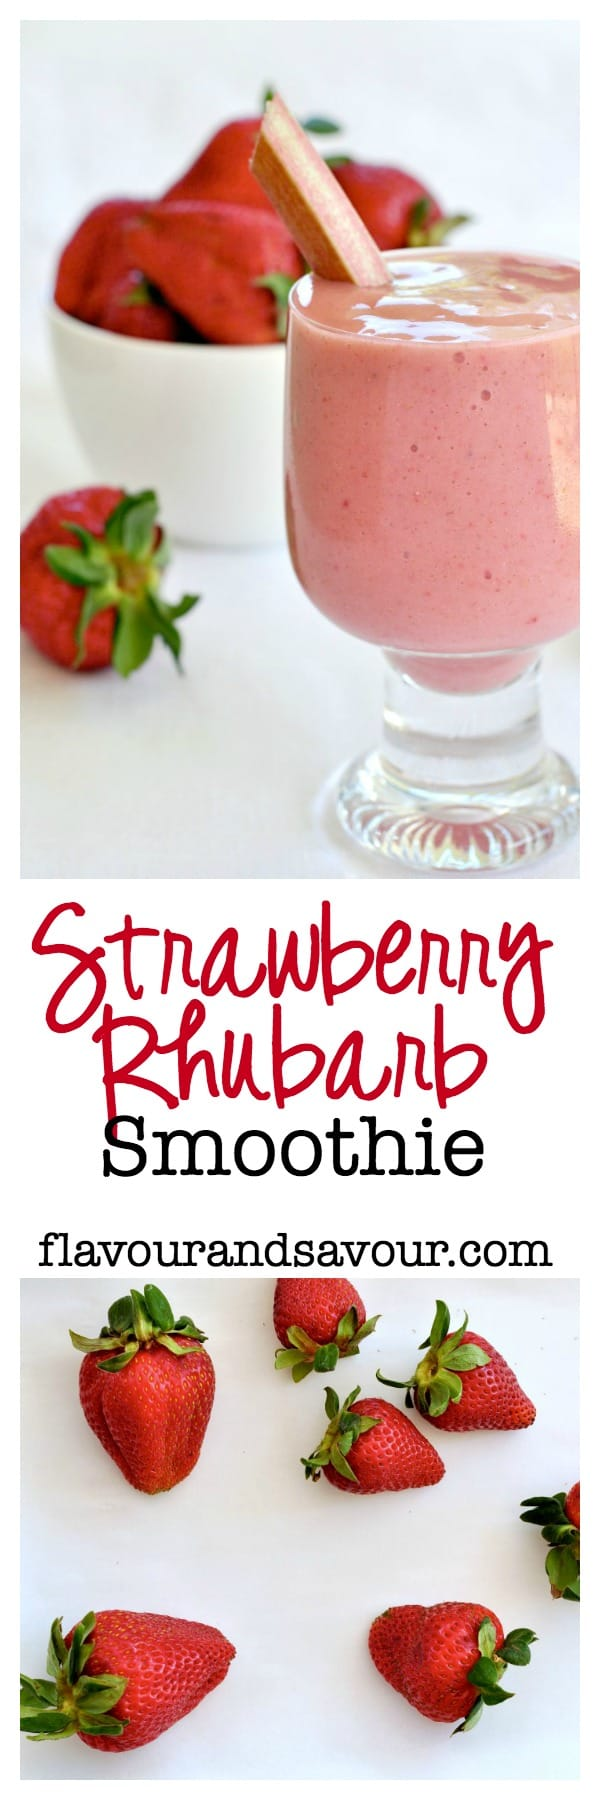 Strawberry-Rhubarb Smoothie. Why make a strawberry-rhubarb pie when you can have a healthy smoothie? |www.flavourandsavour.com